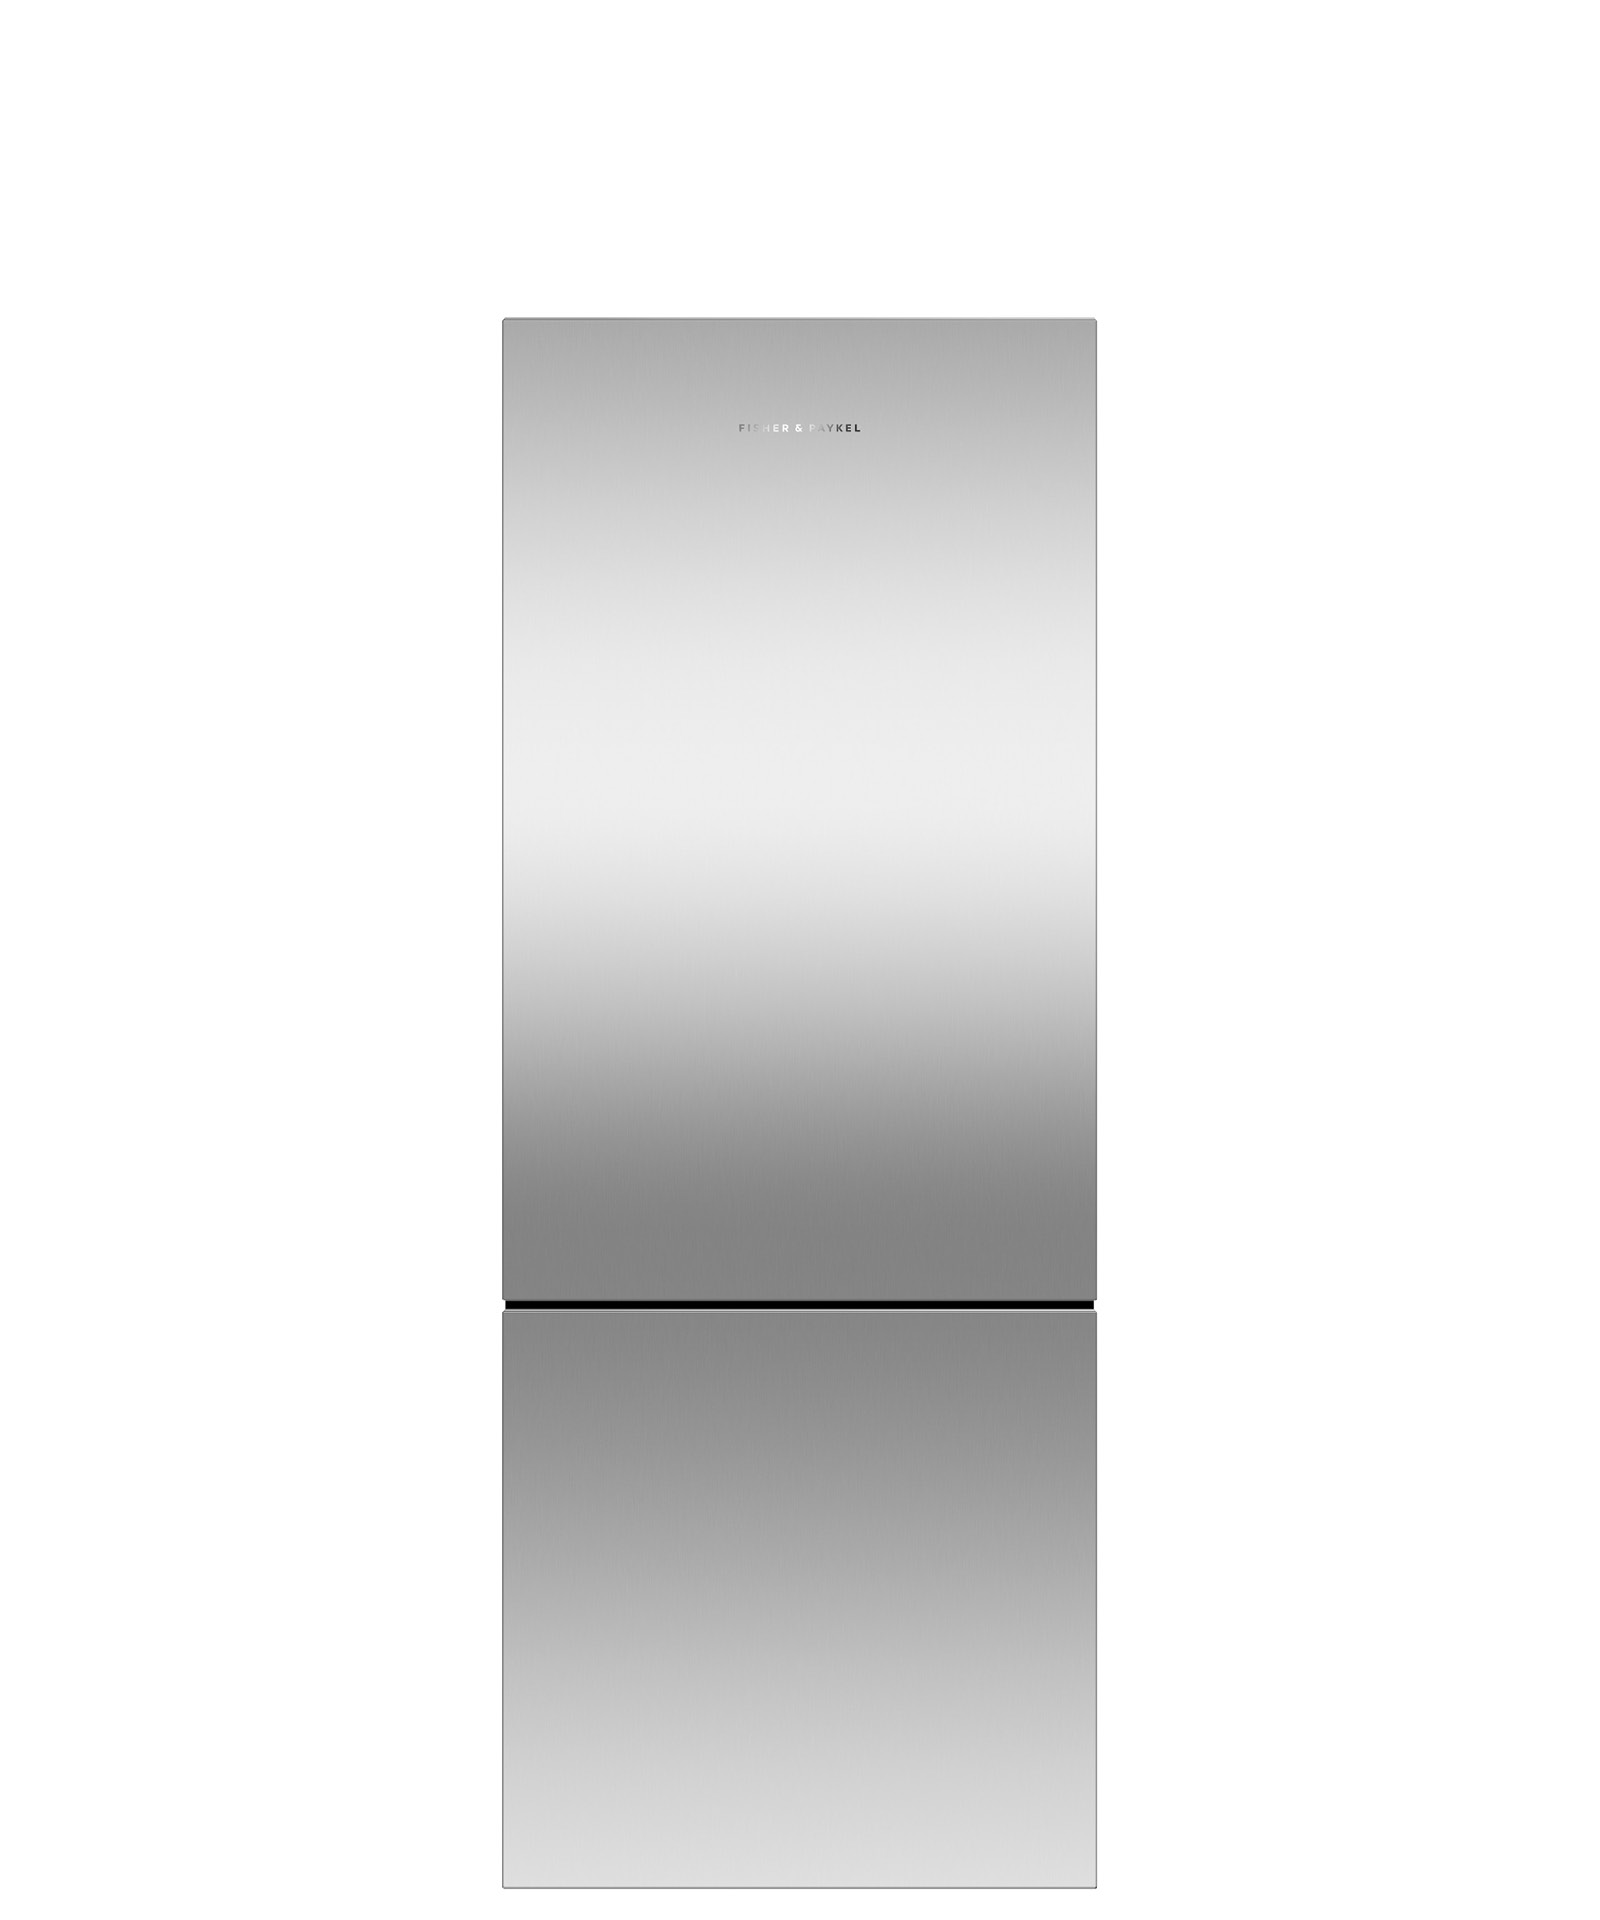 Model: RF135BLPX6_N | Fisher and Paykel Counter Depth Refrigerator 13.5 cu ft